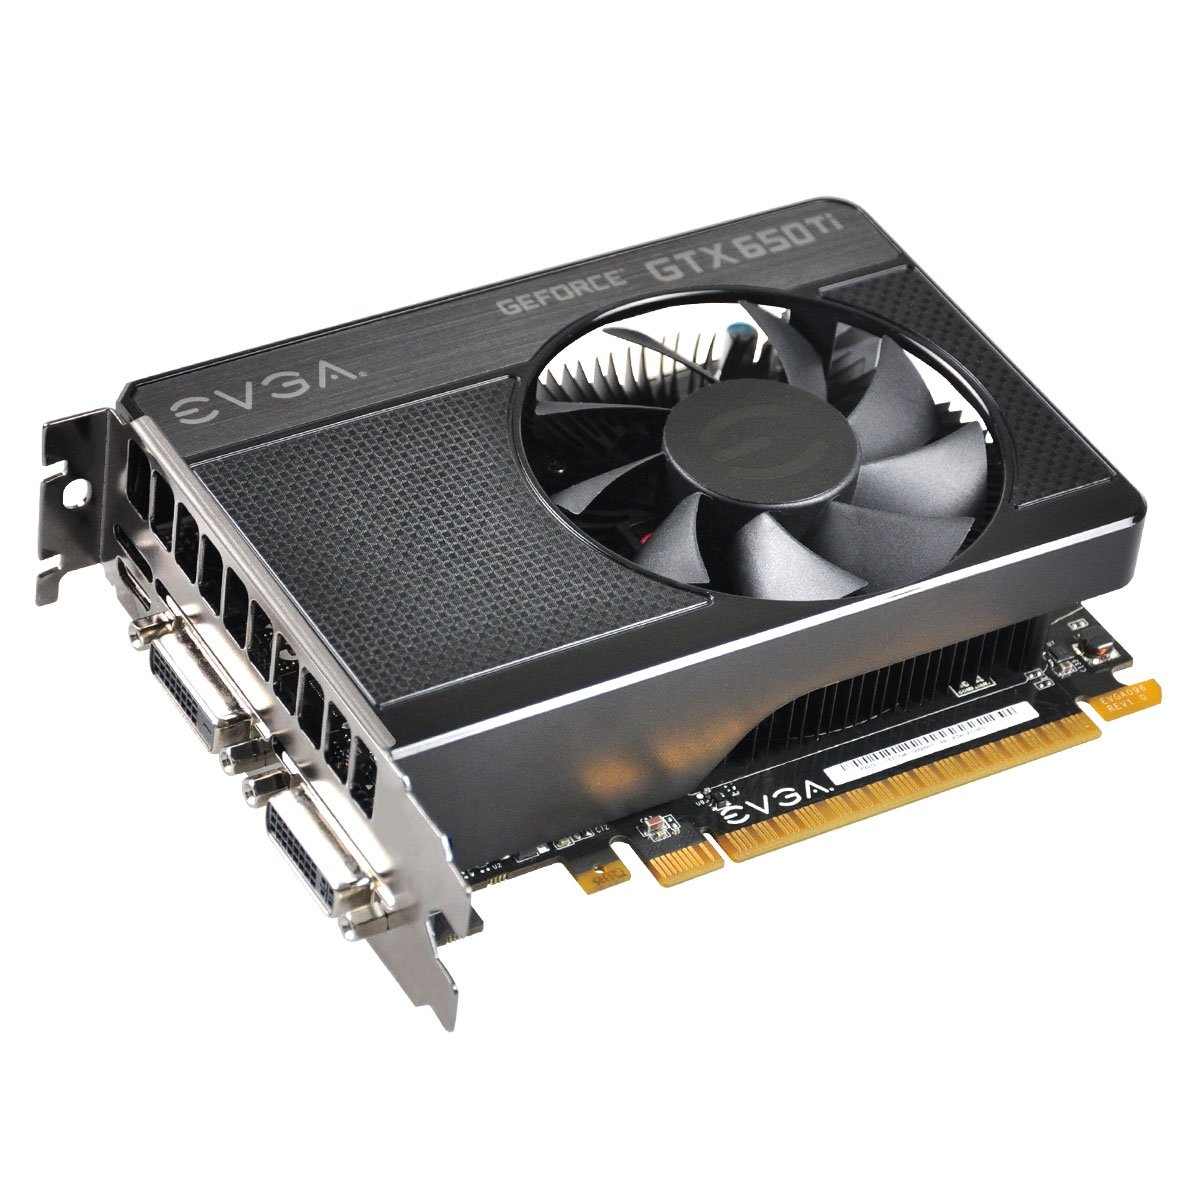 EVGA GeForce GTX 650 Ti SSC 1024MB GDDR5 128bit, Dual Dual-Link DVI, Mini HDMI, Graphics Card (01G-P4-3652-KR) Graphics Cards 01G-P4-3652-KR